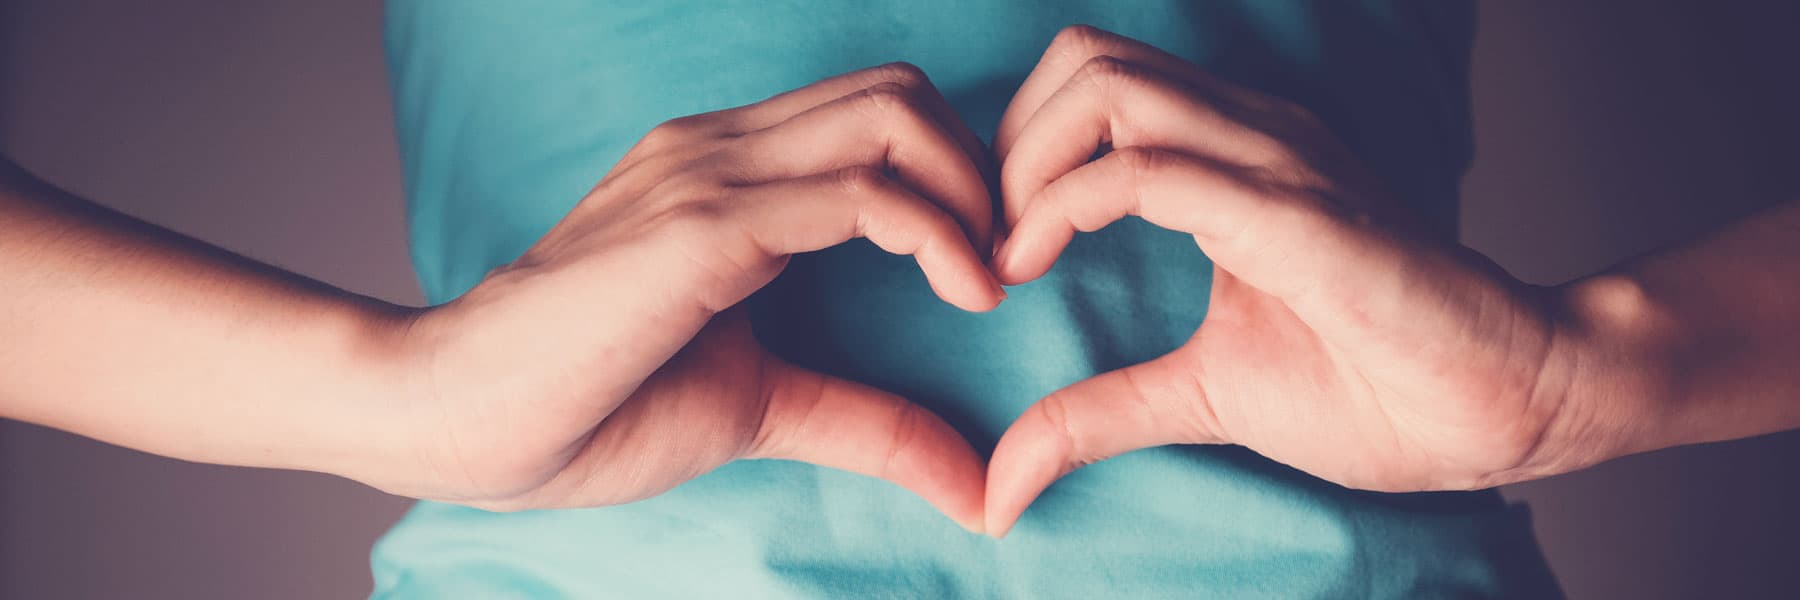 woman making heart with hands over stomach